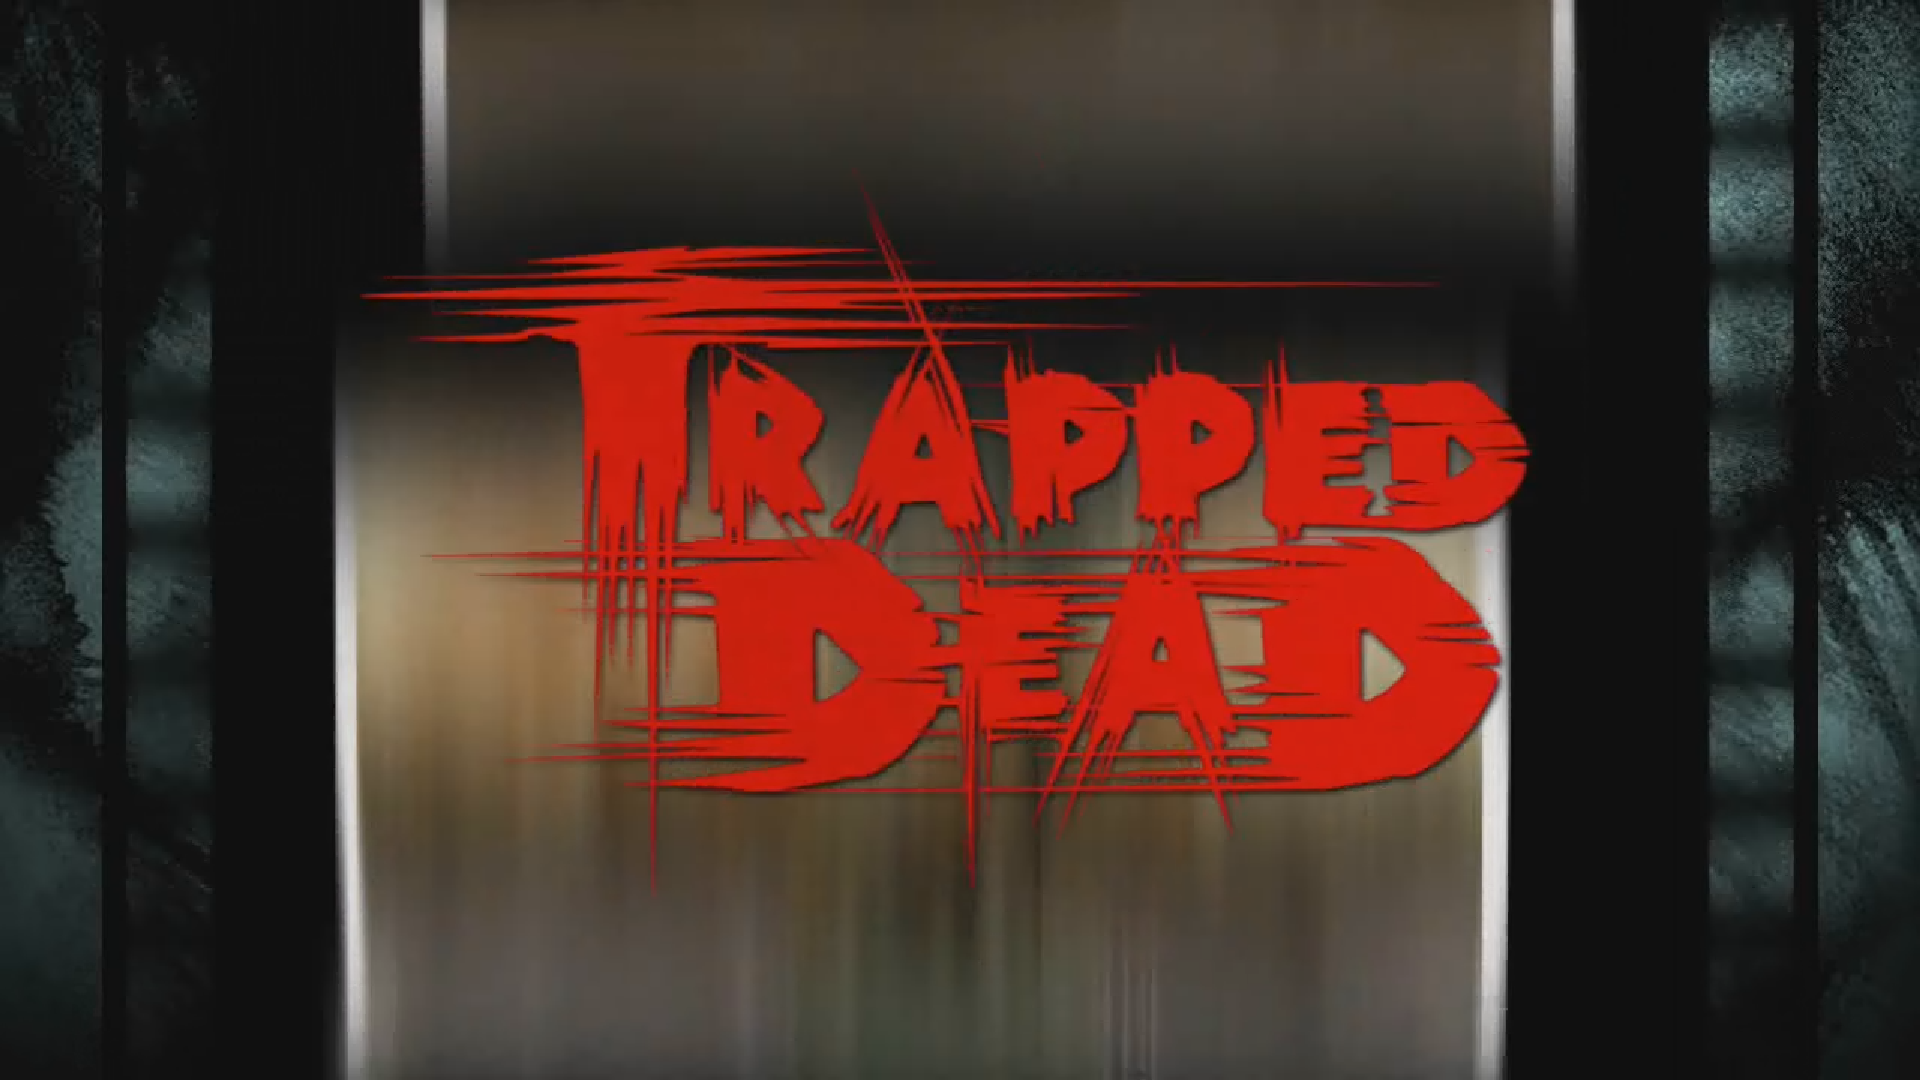 Trapped Dead Windows Title shown in intro sequence